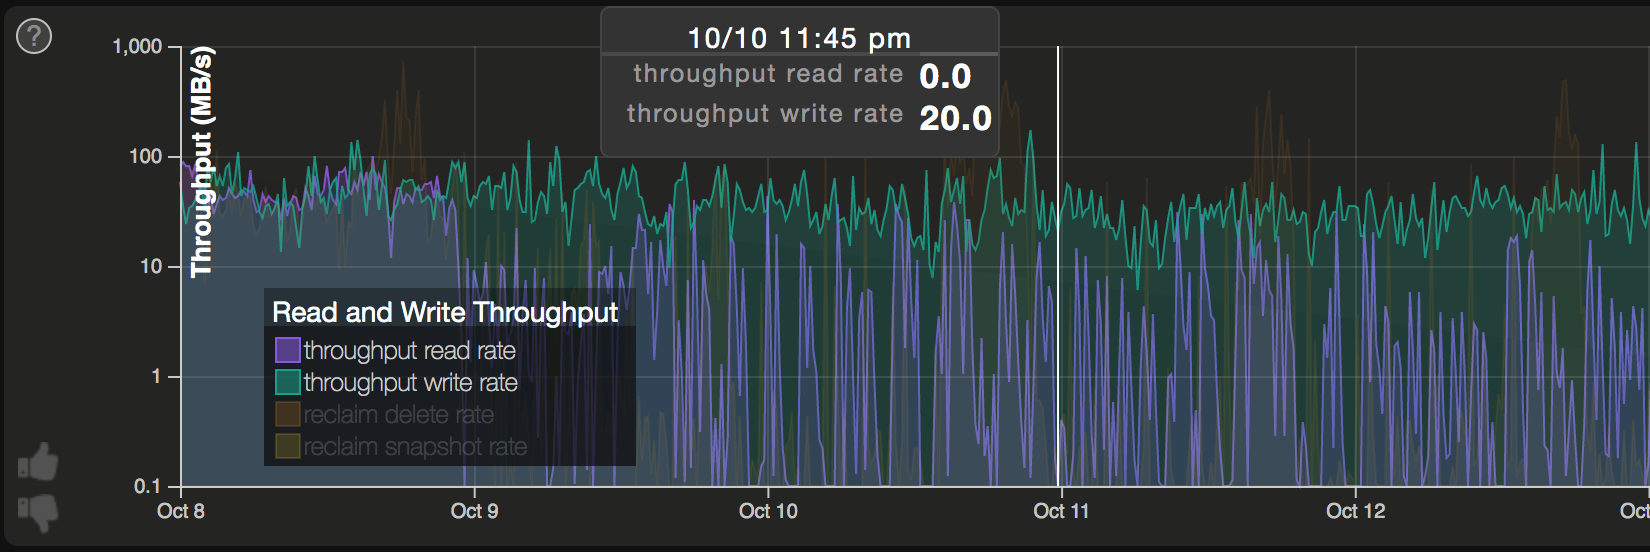 trends_read_write_throughput.png